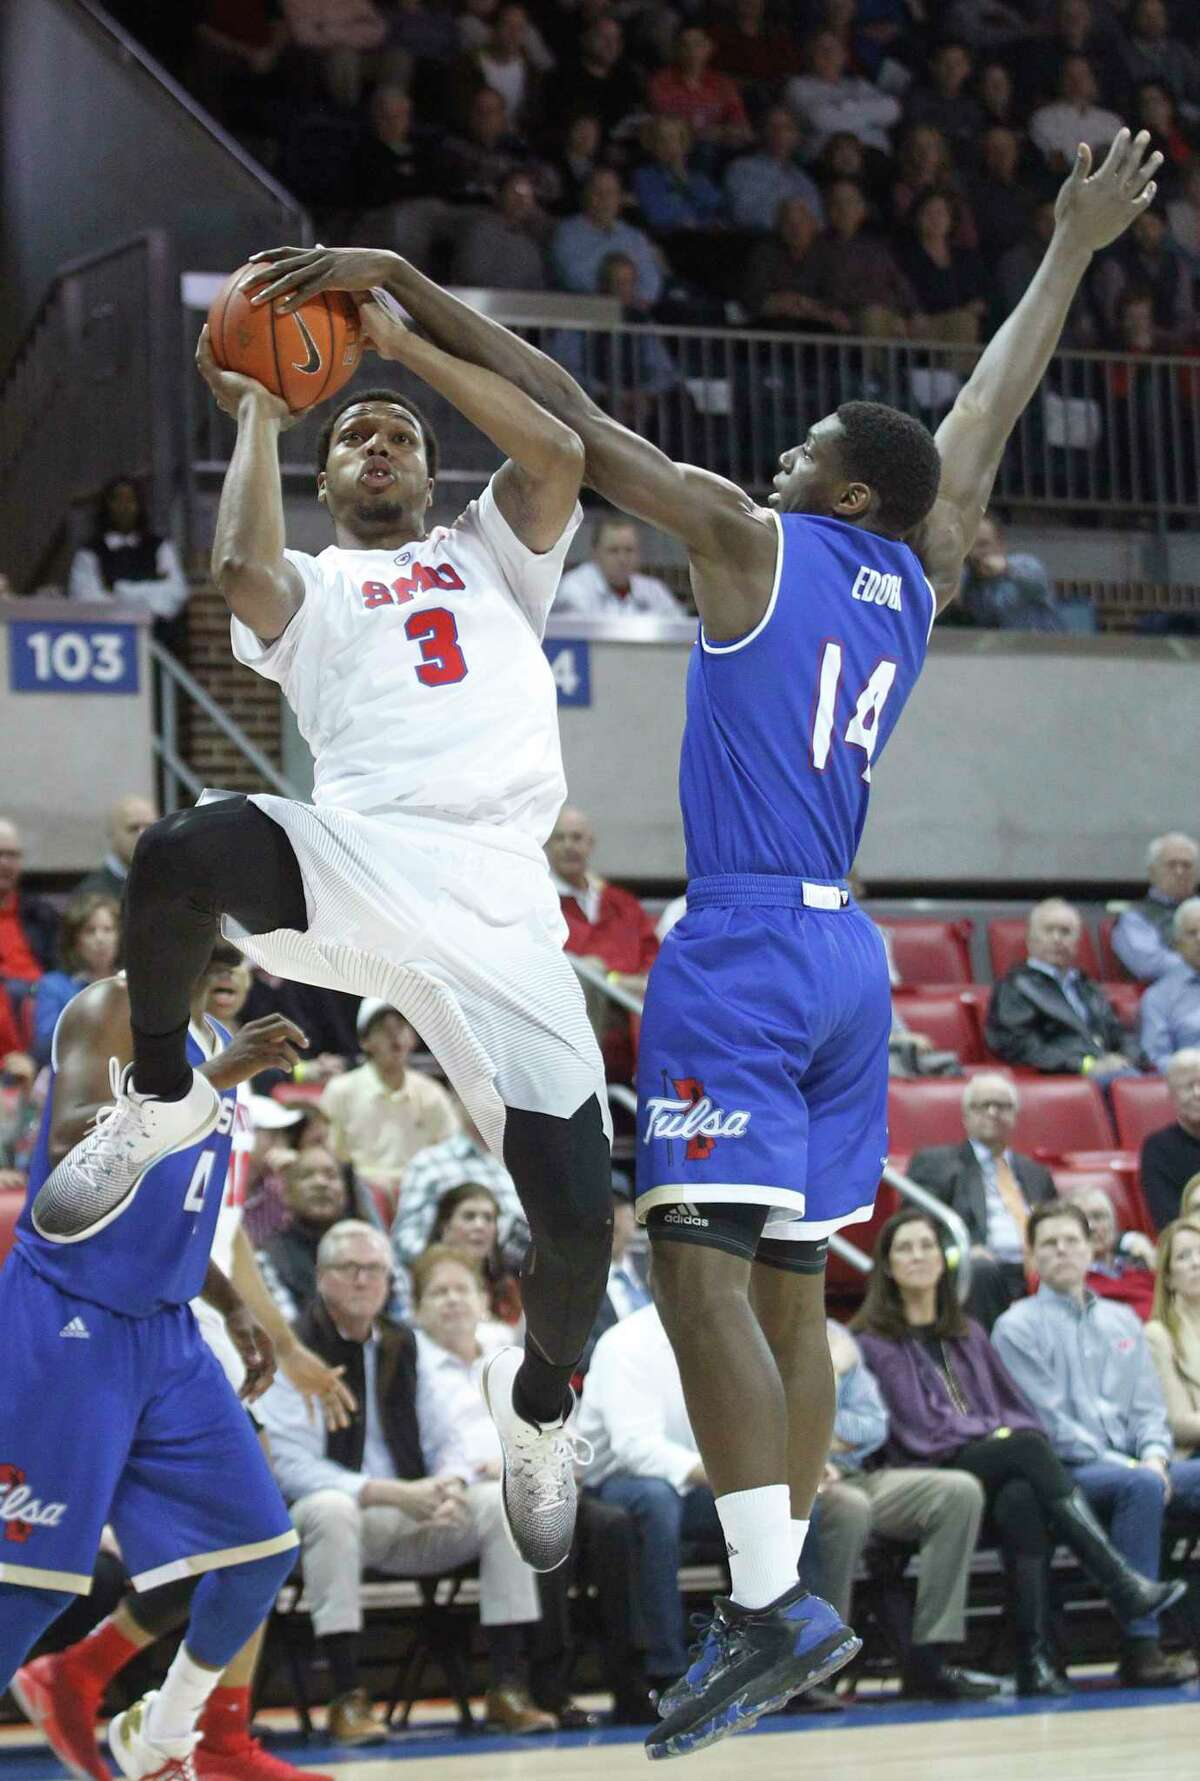 SMU guard Sterling Brown (3) is fouled by Tulsa forward Tarekeyi Edogi (14) during the first half of an NCAA college basketball game, Thursday, March 2, 2017, in Dallas.